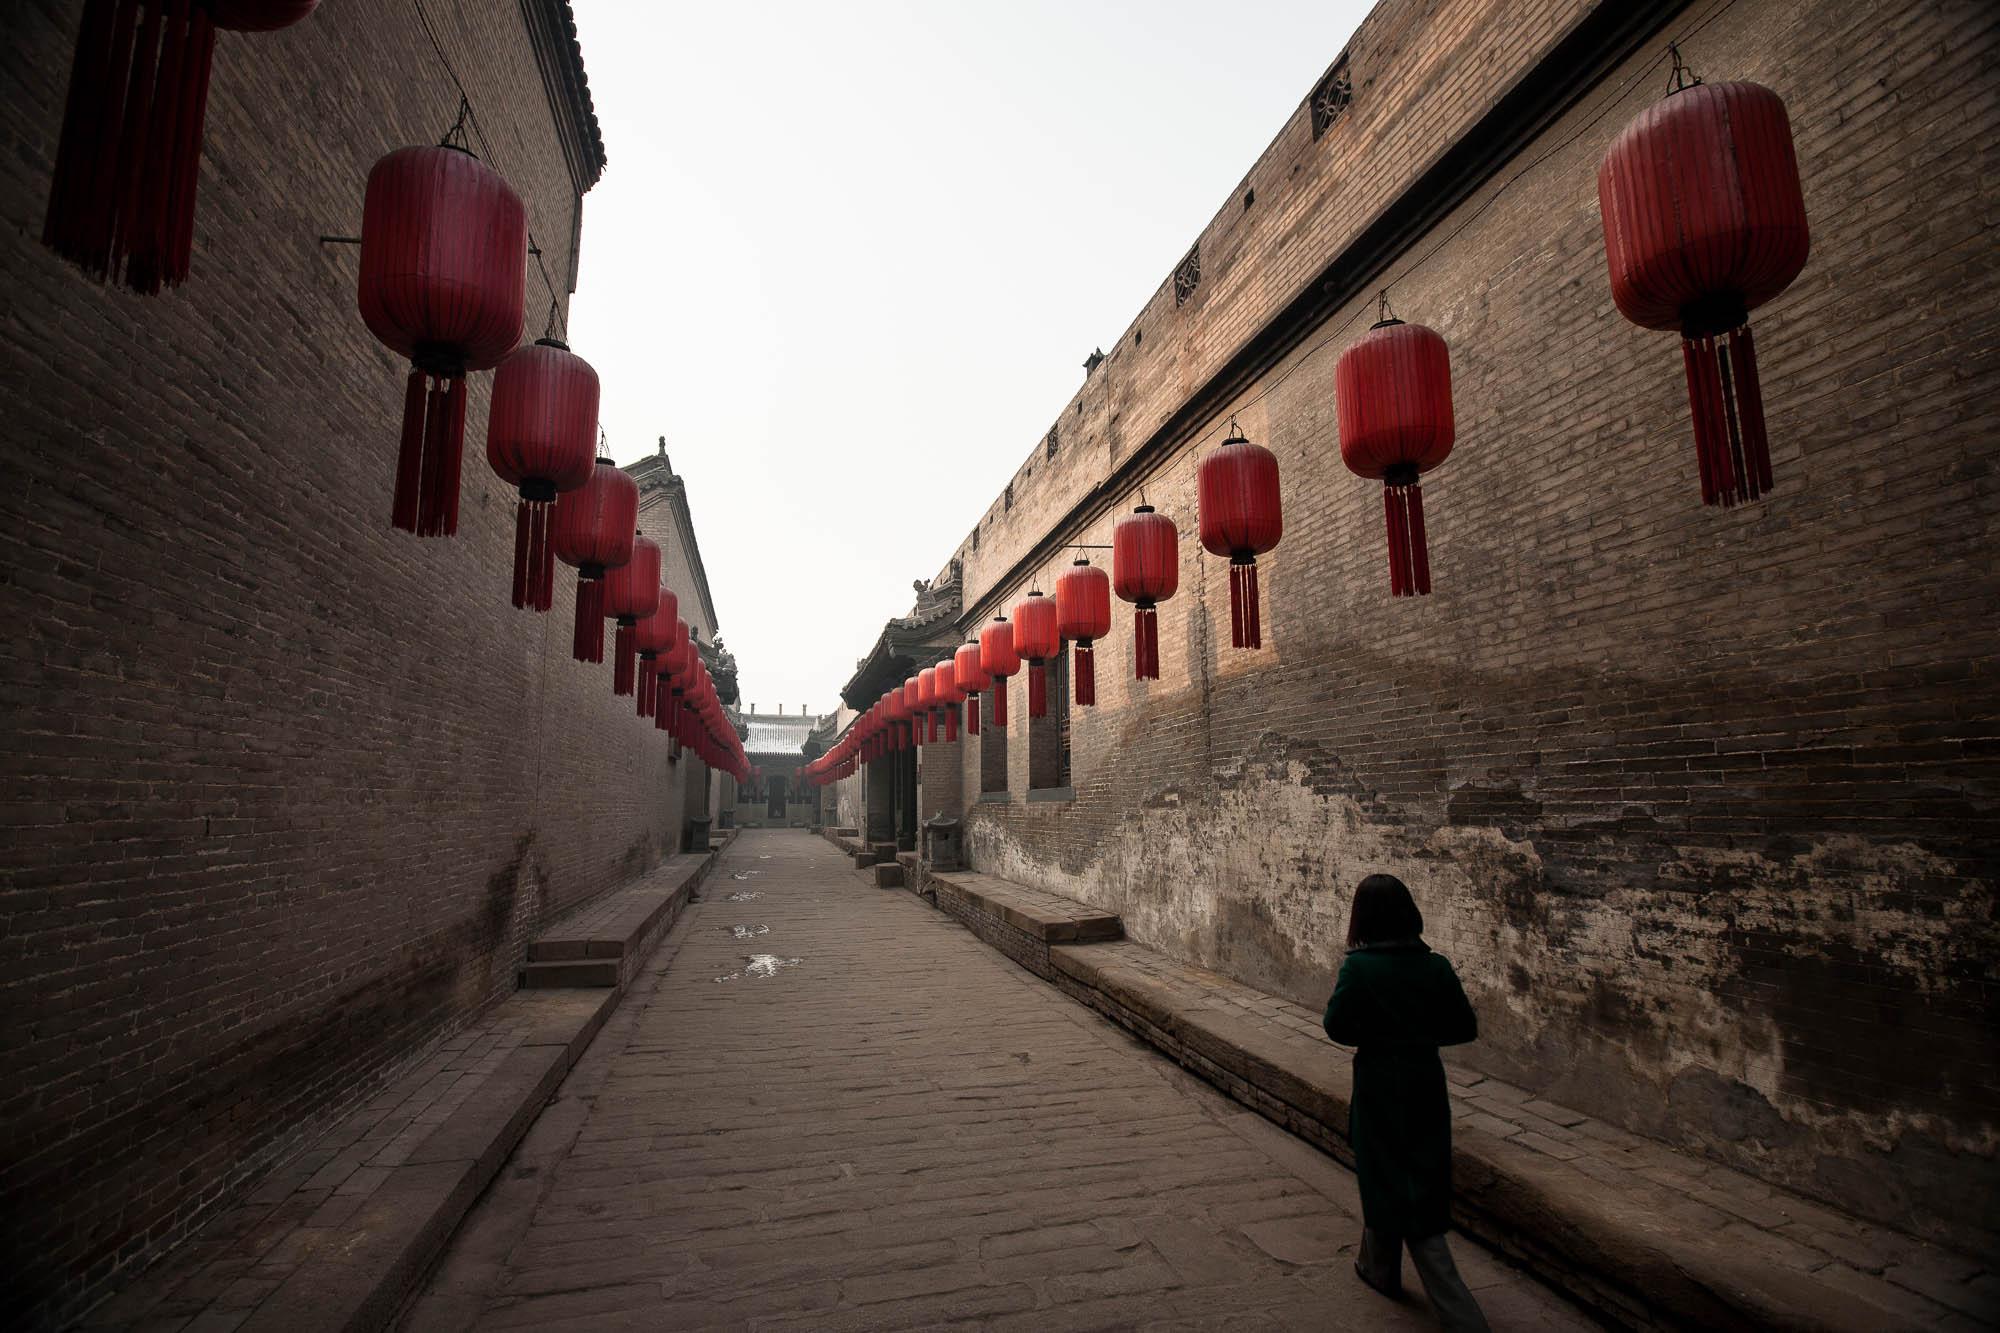 Qiao Family Mansion street